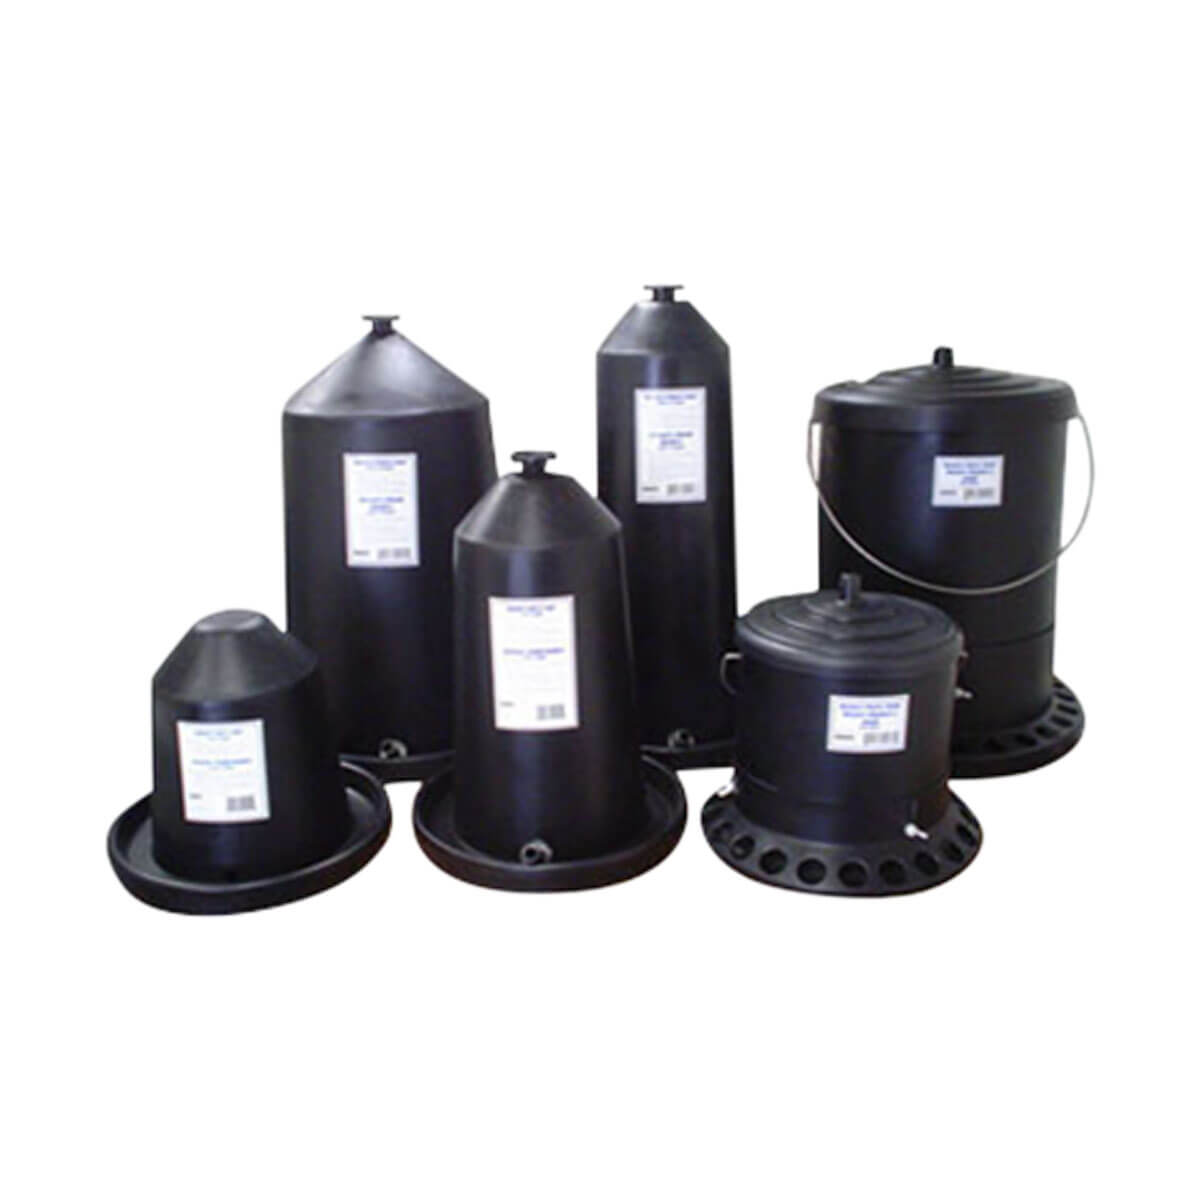 14 Gal. Poultry Waterer